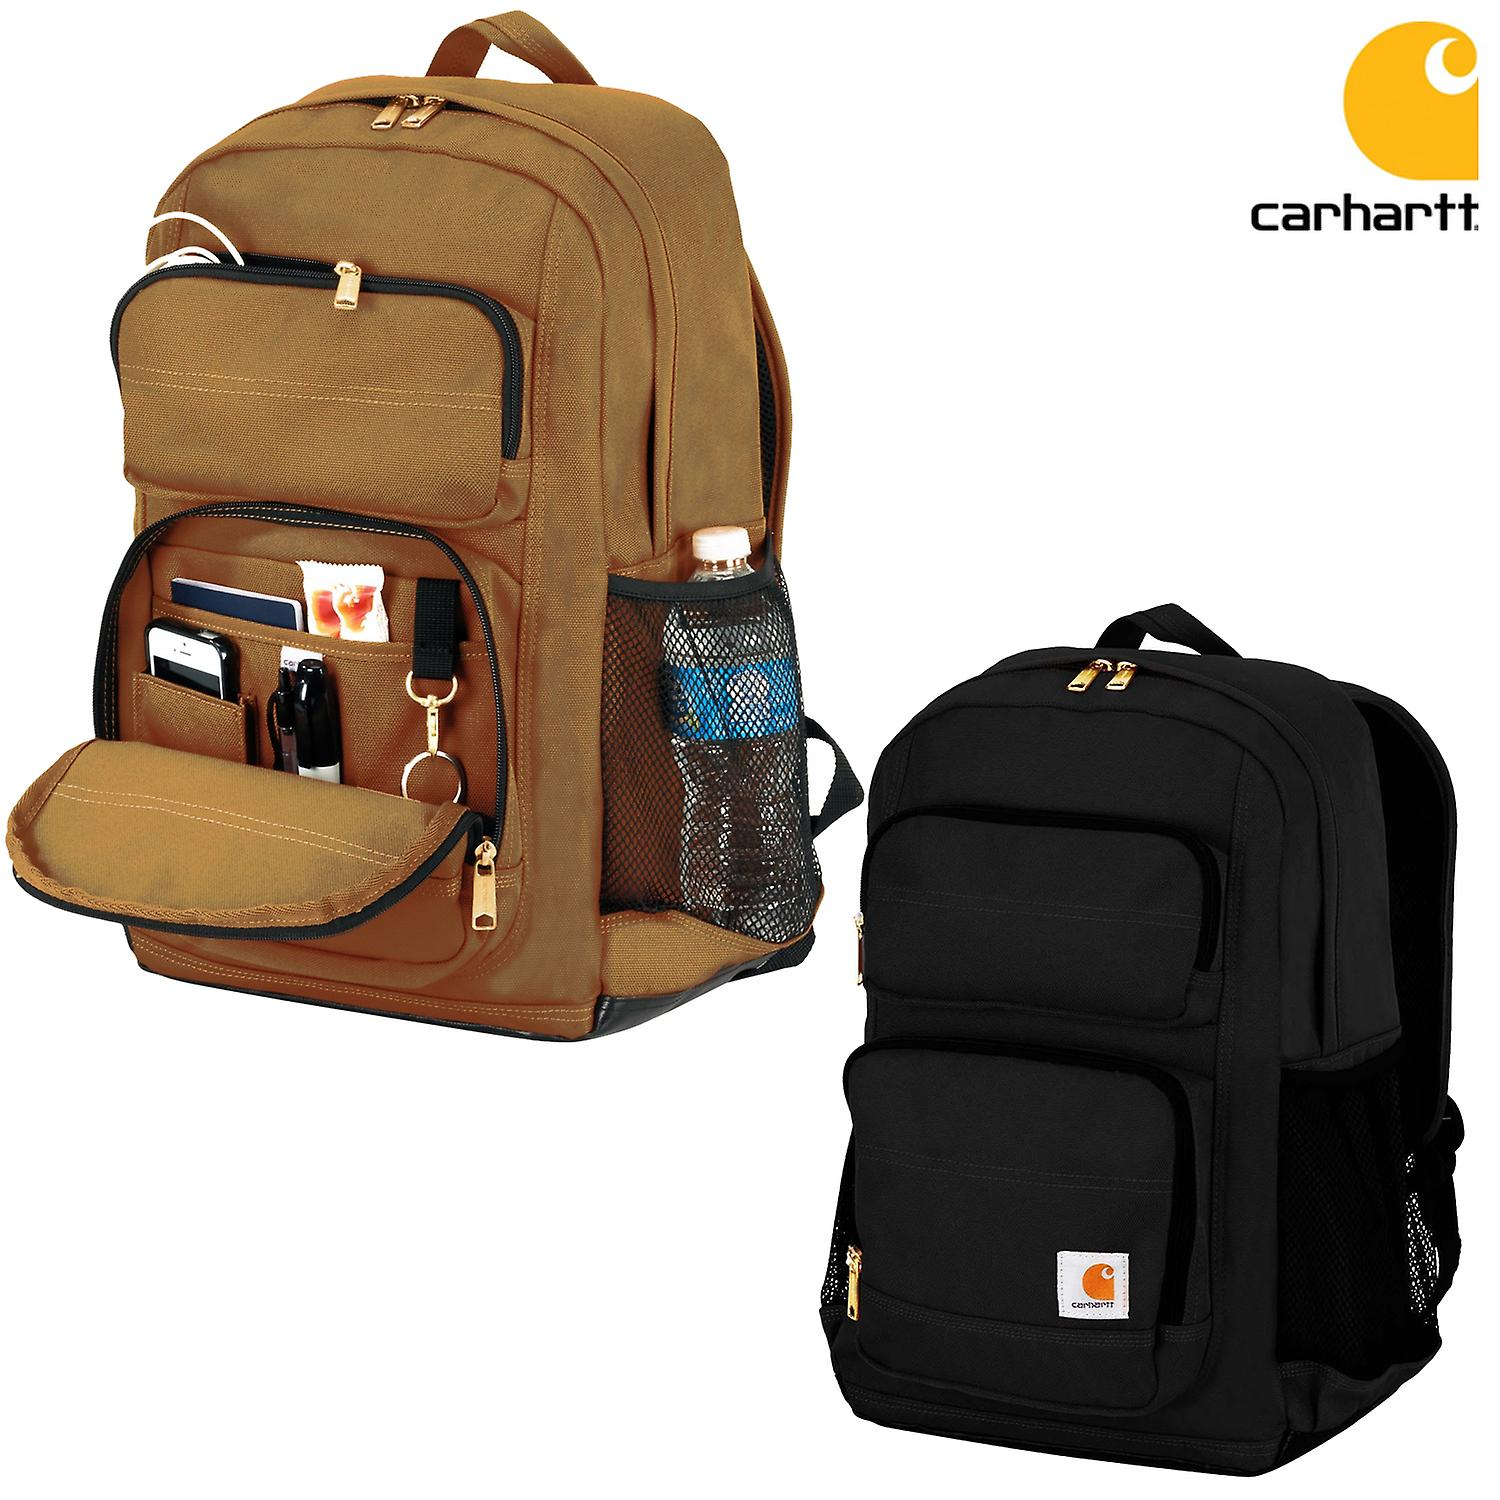 Carhartt backpack legacy standard work Pack